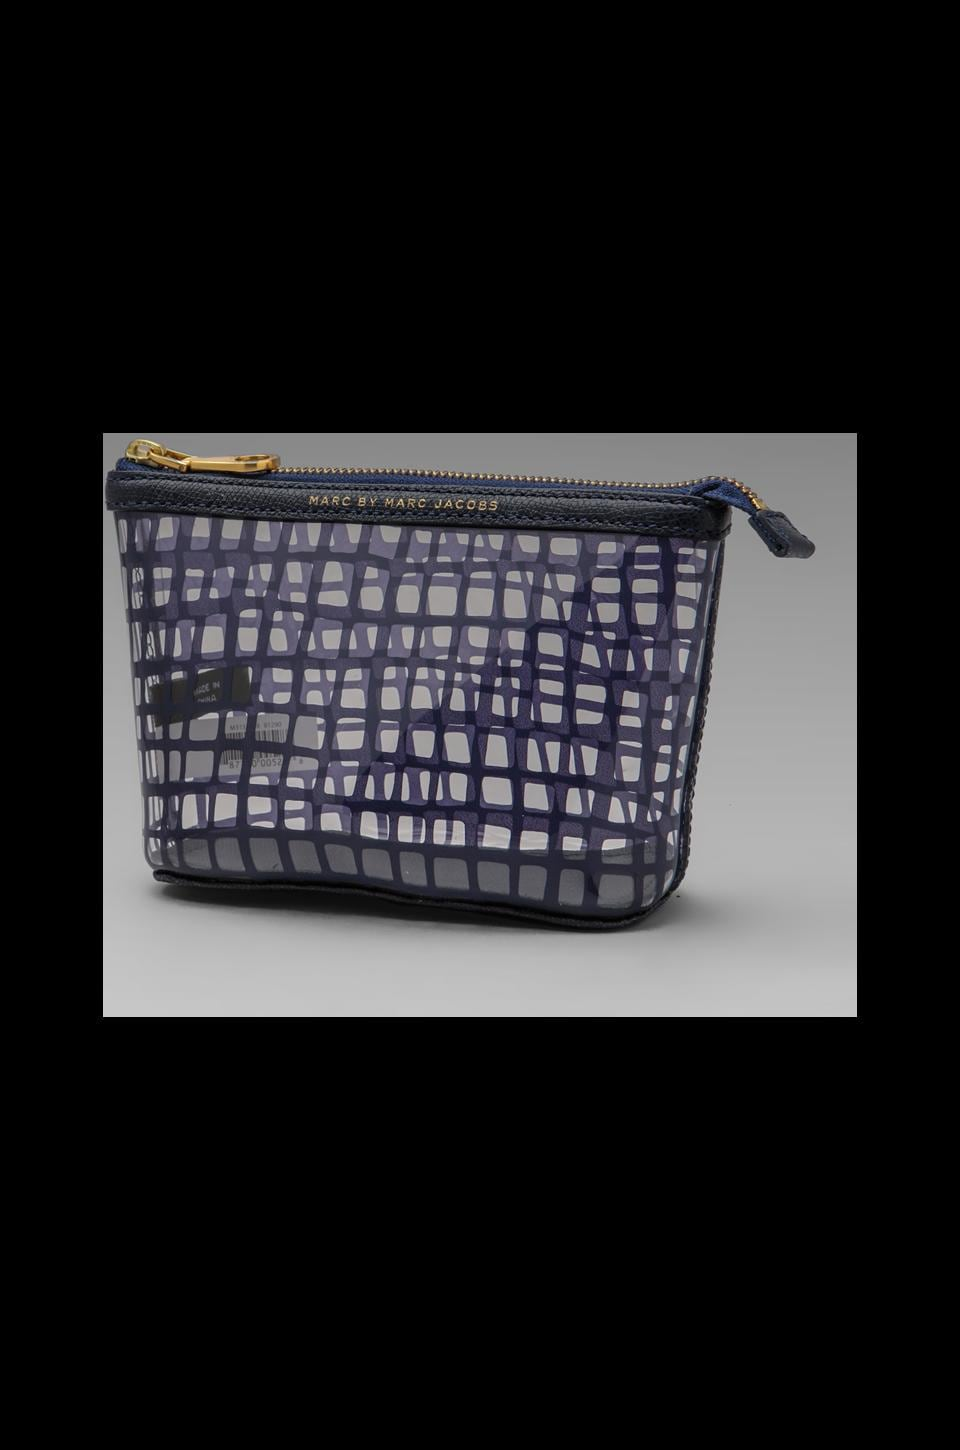 Marc by Marc Jacobs Checkmate Landscape Pouch in Carpathian Blue